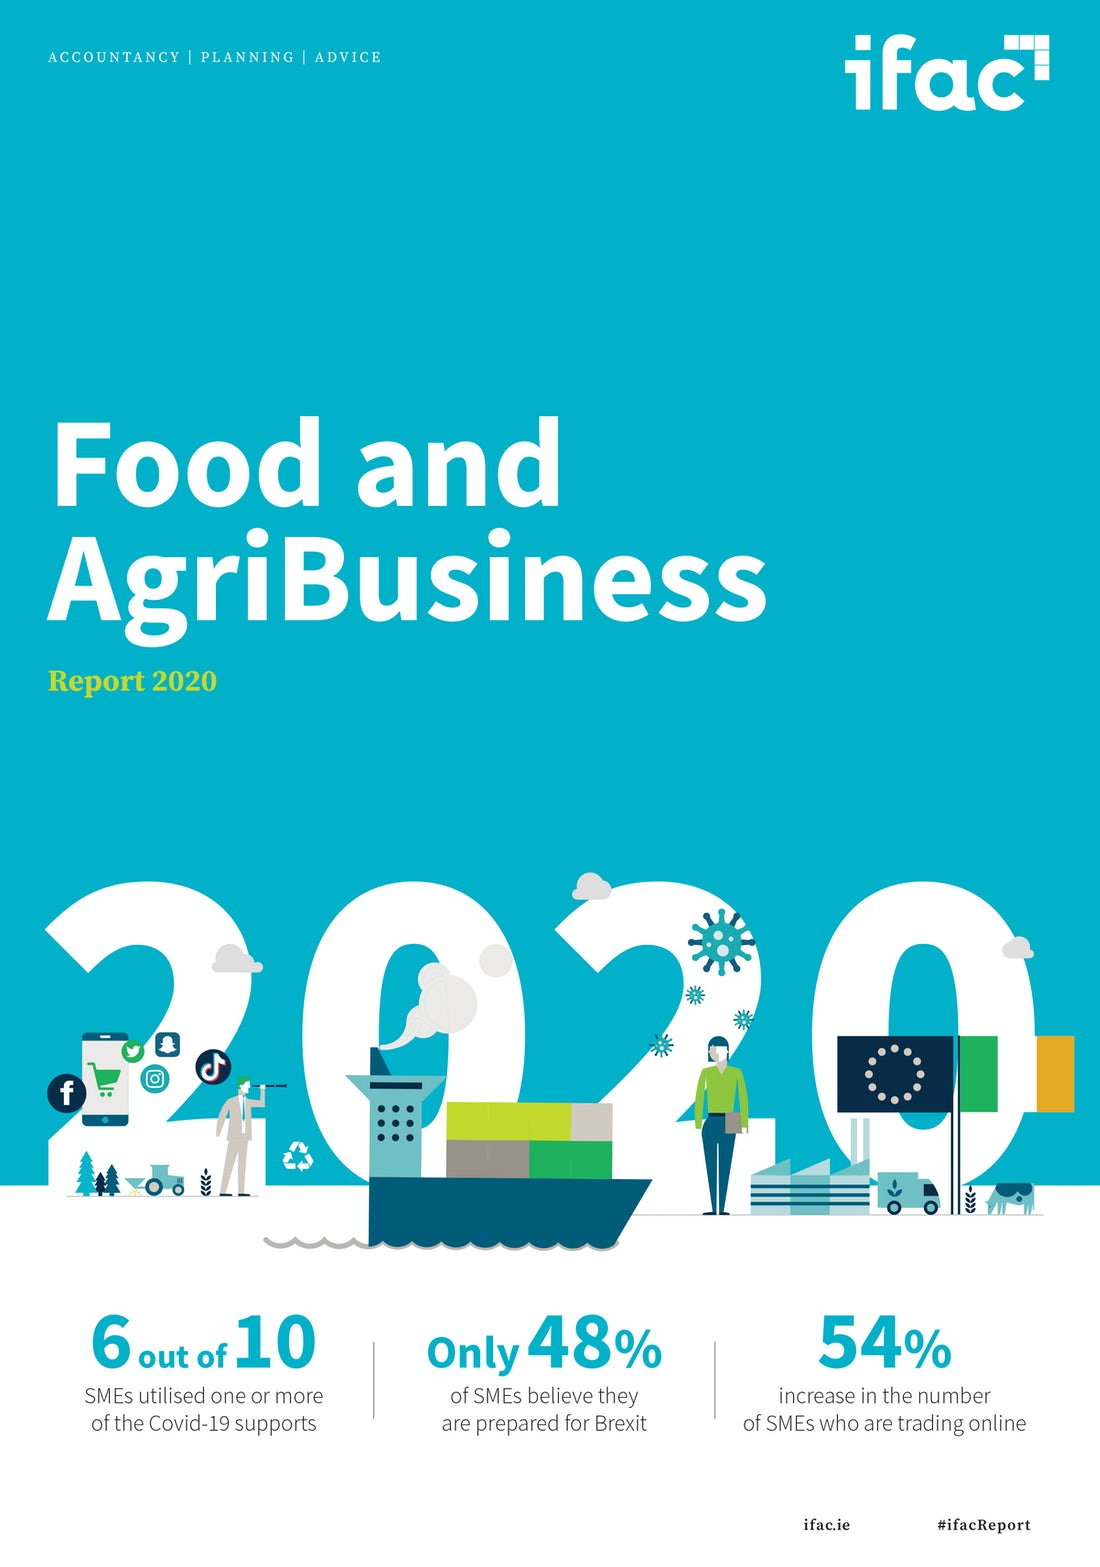 Download the 2020 ifac Food & AgriBusiness Report